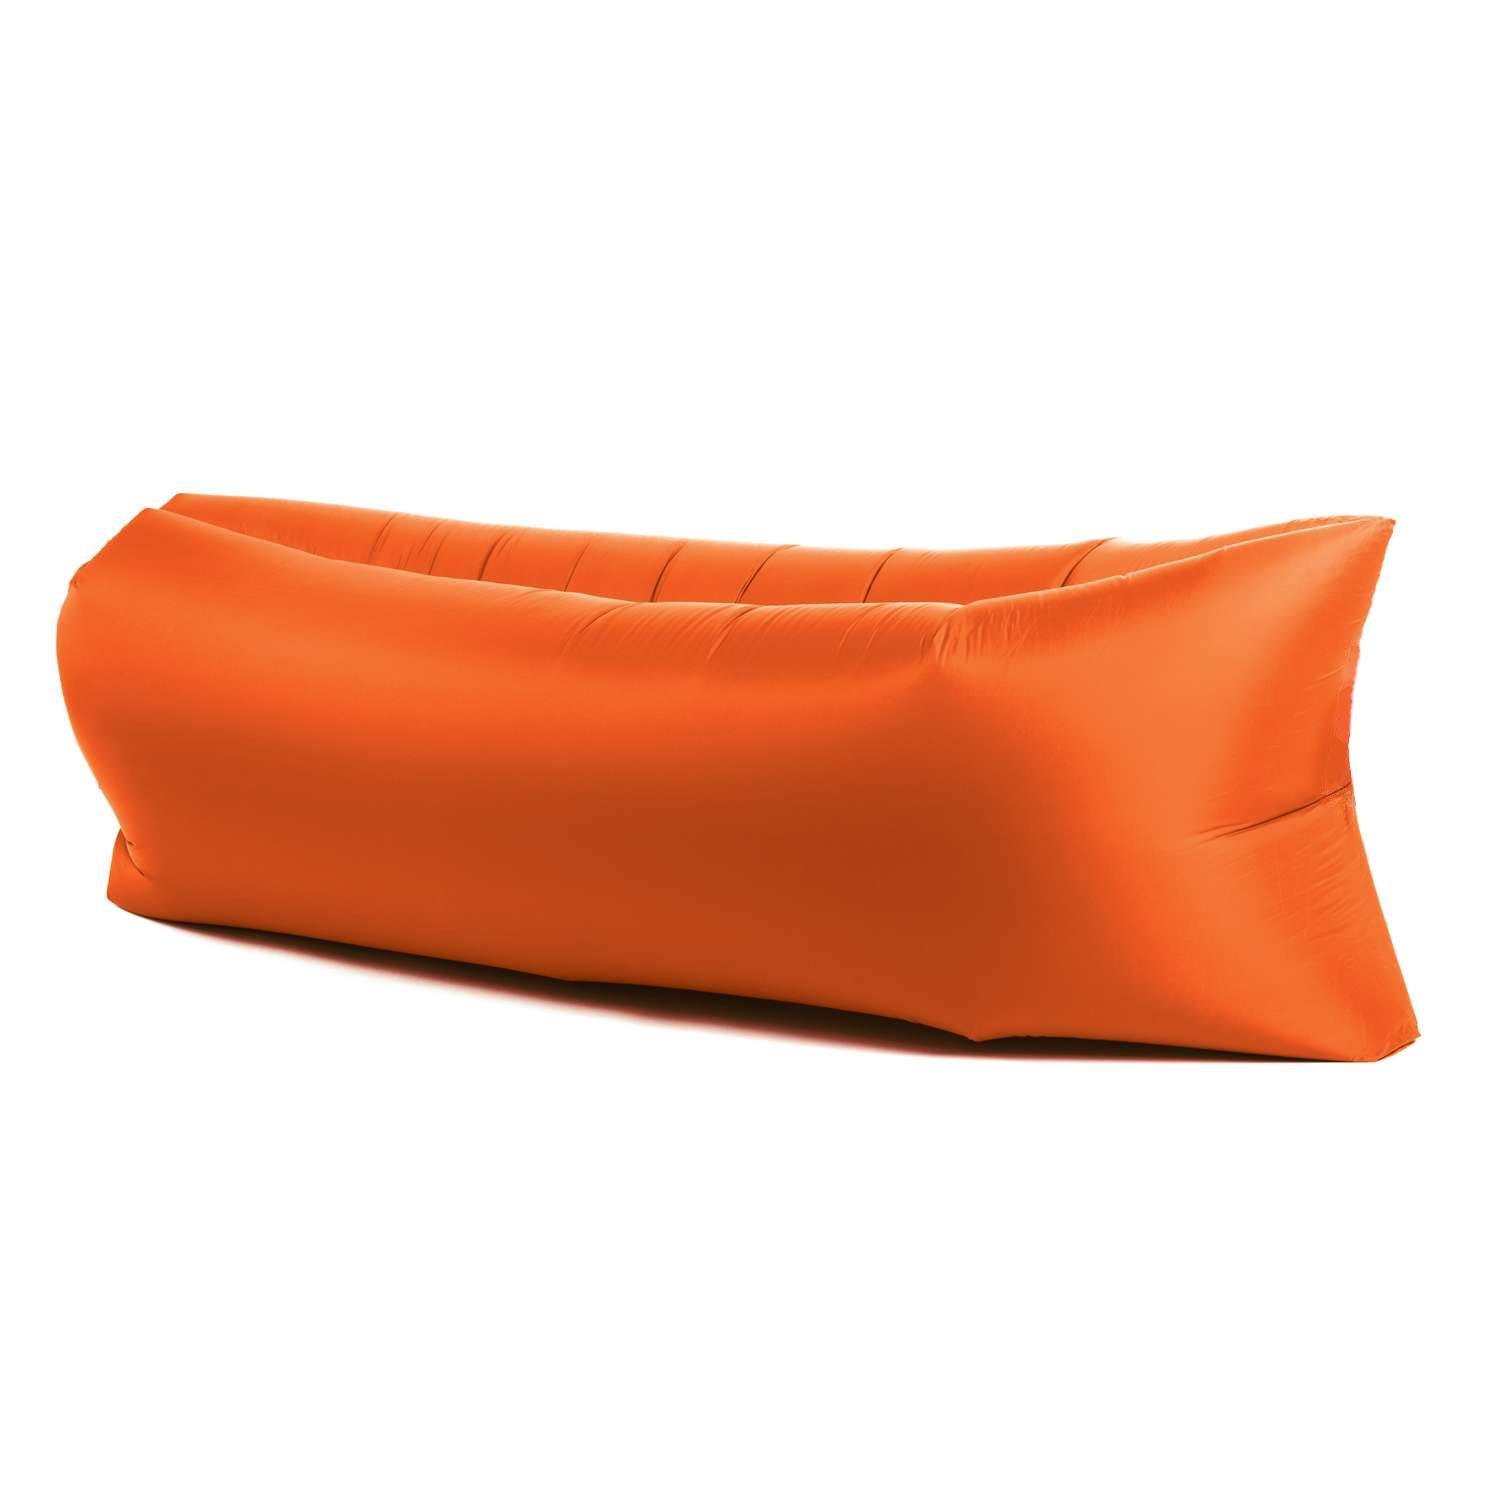 Anywhere Inflatable Lounger Indoor & Outdoor - Orange